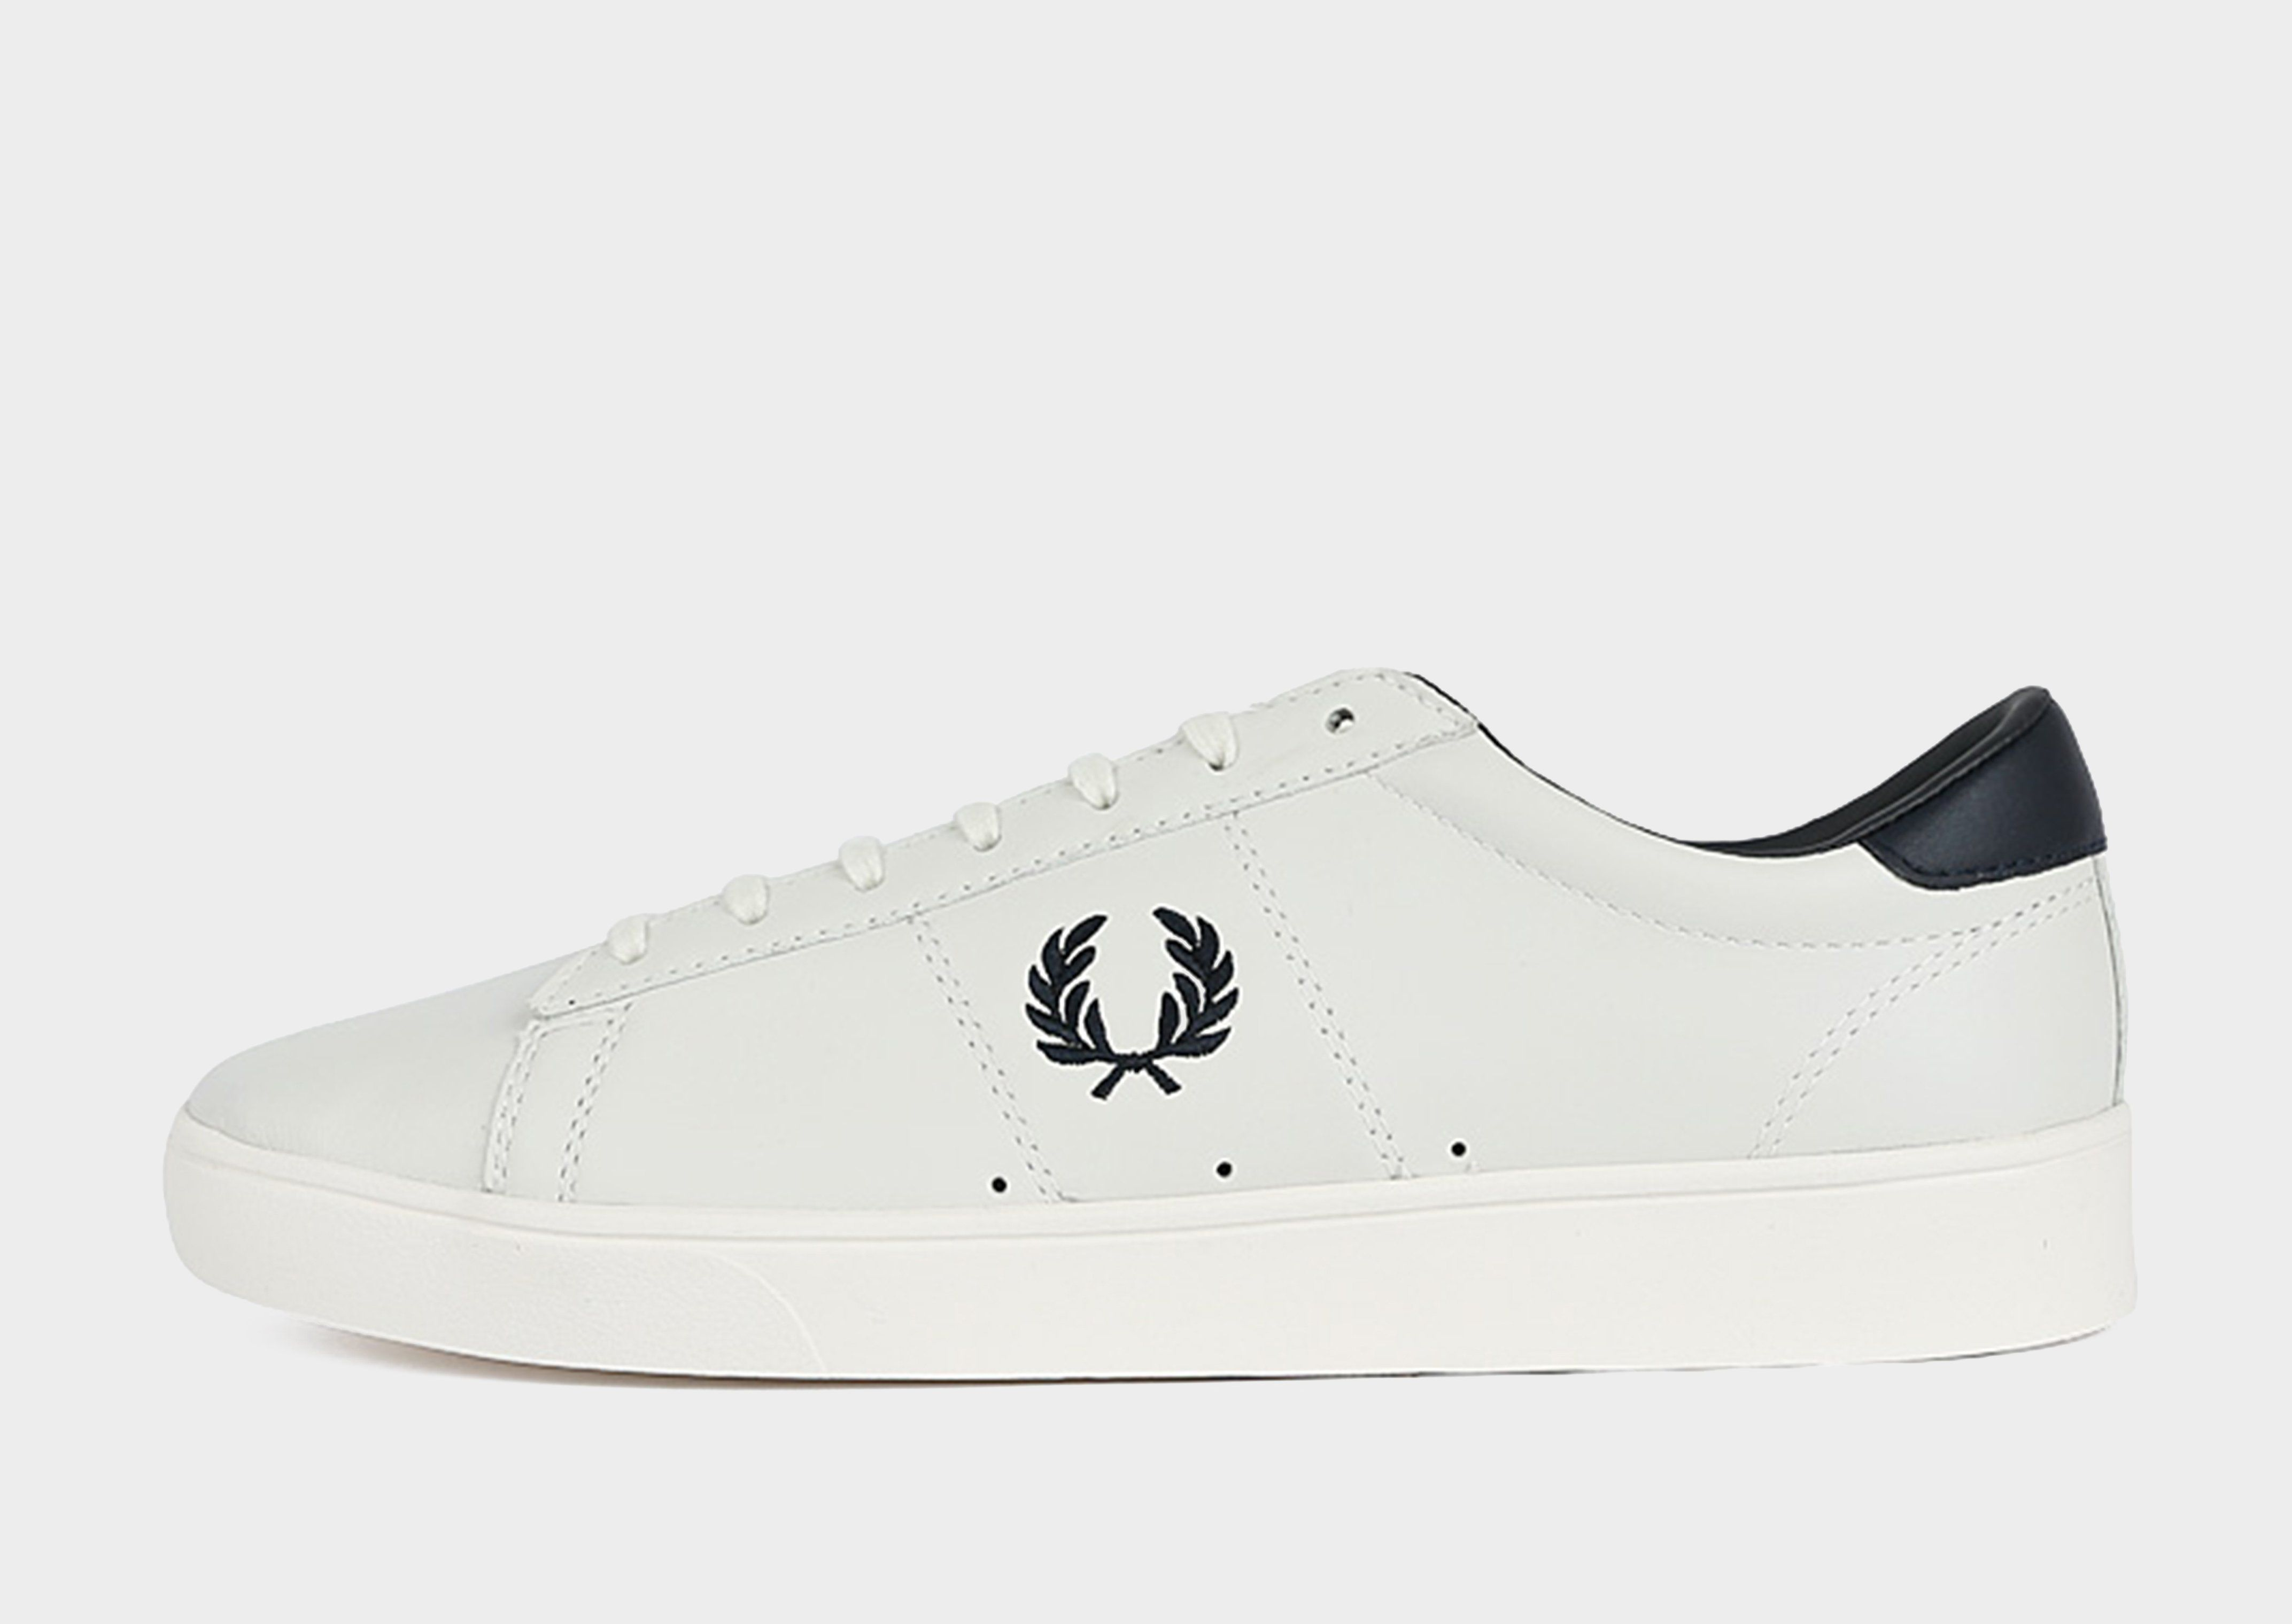 FREDPERRY Spencer Leather  fc05fa7d57